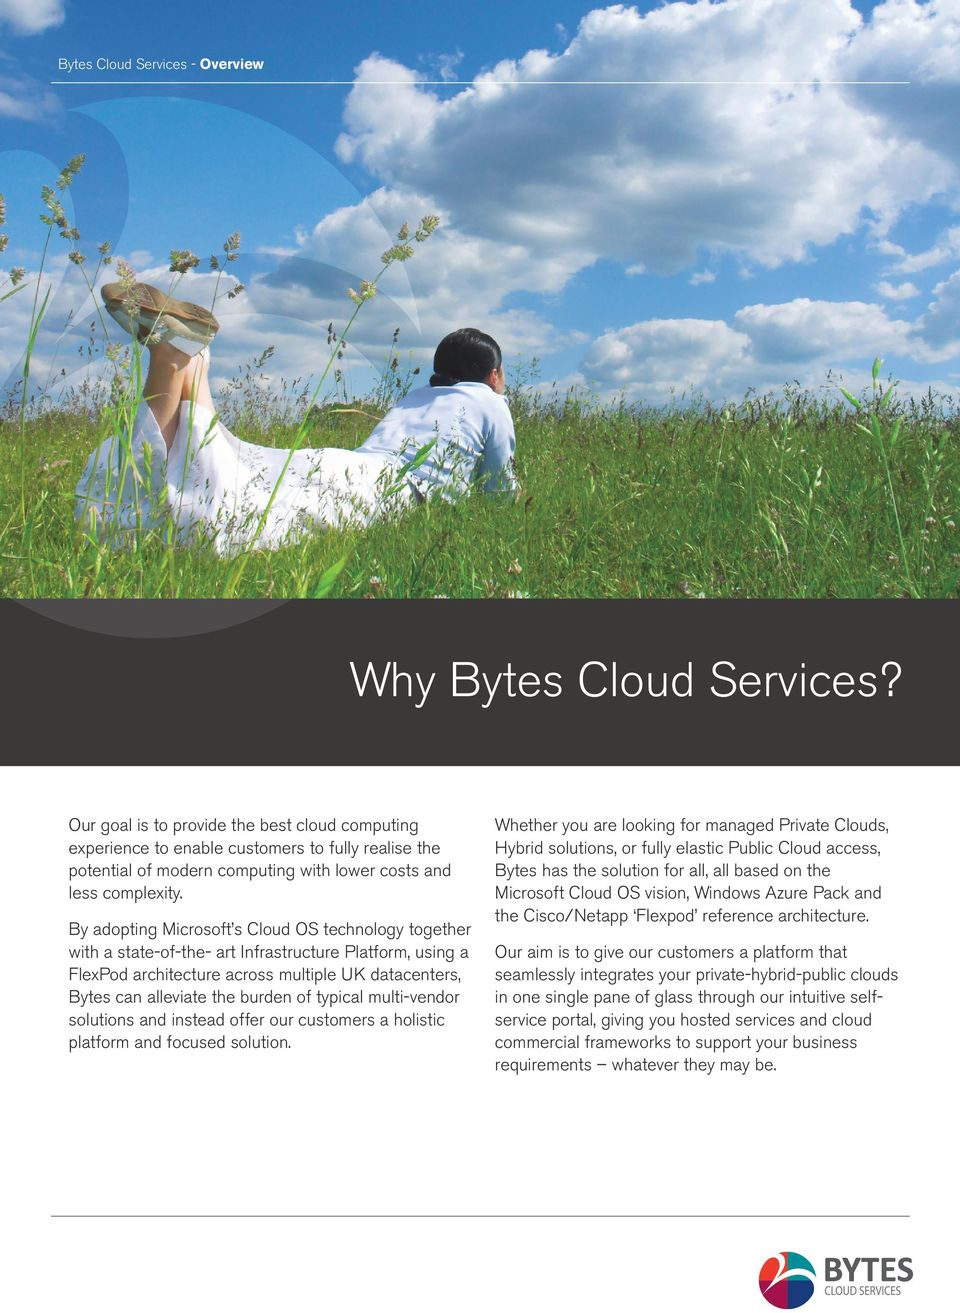 By adopting Microsoft s Cloud OS technology together with a state-of-the- art Infrastructure Platform, using a FlexPod architecture across multiple UK datacenters, Bytes can alleviate the burden of